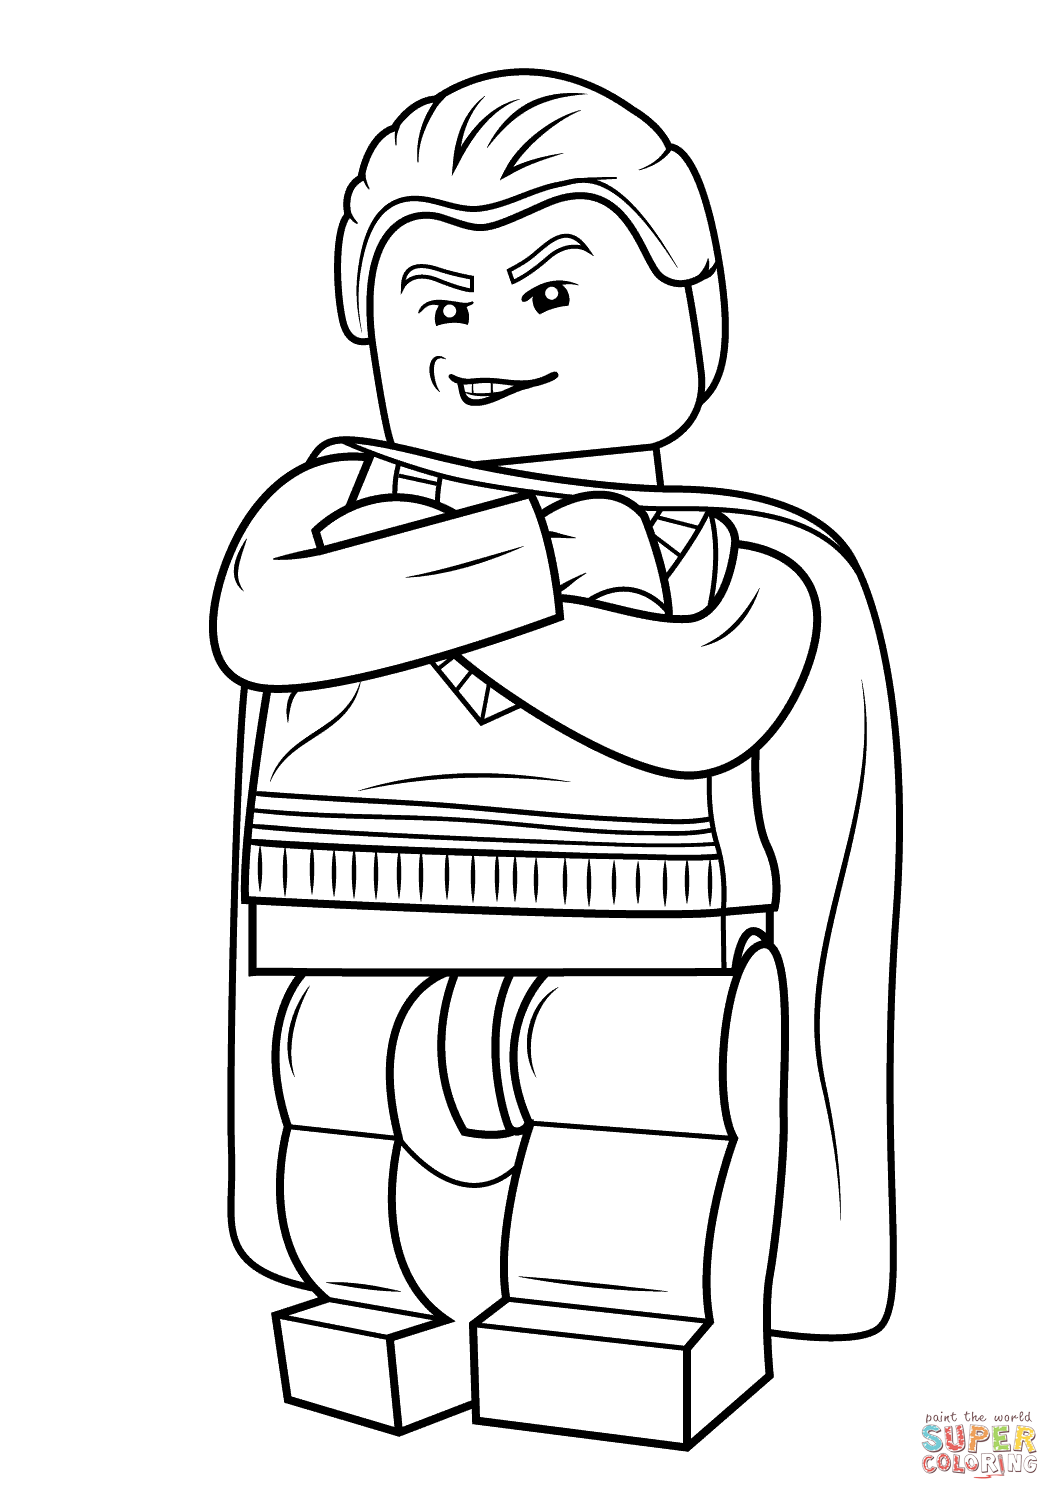 Harry Potter Coloring Pages Draco Malfoy Coloring Home Lego Harry Potter Coloring Pages